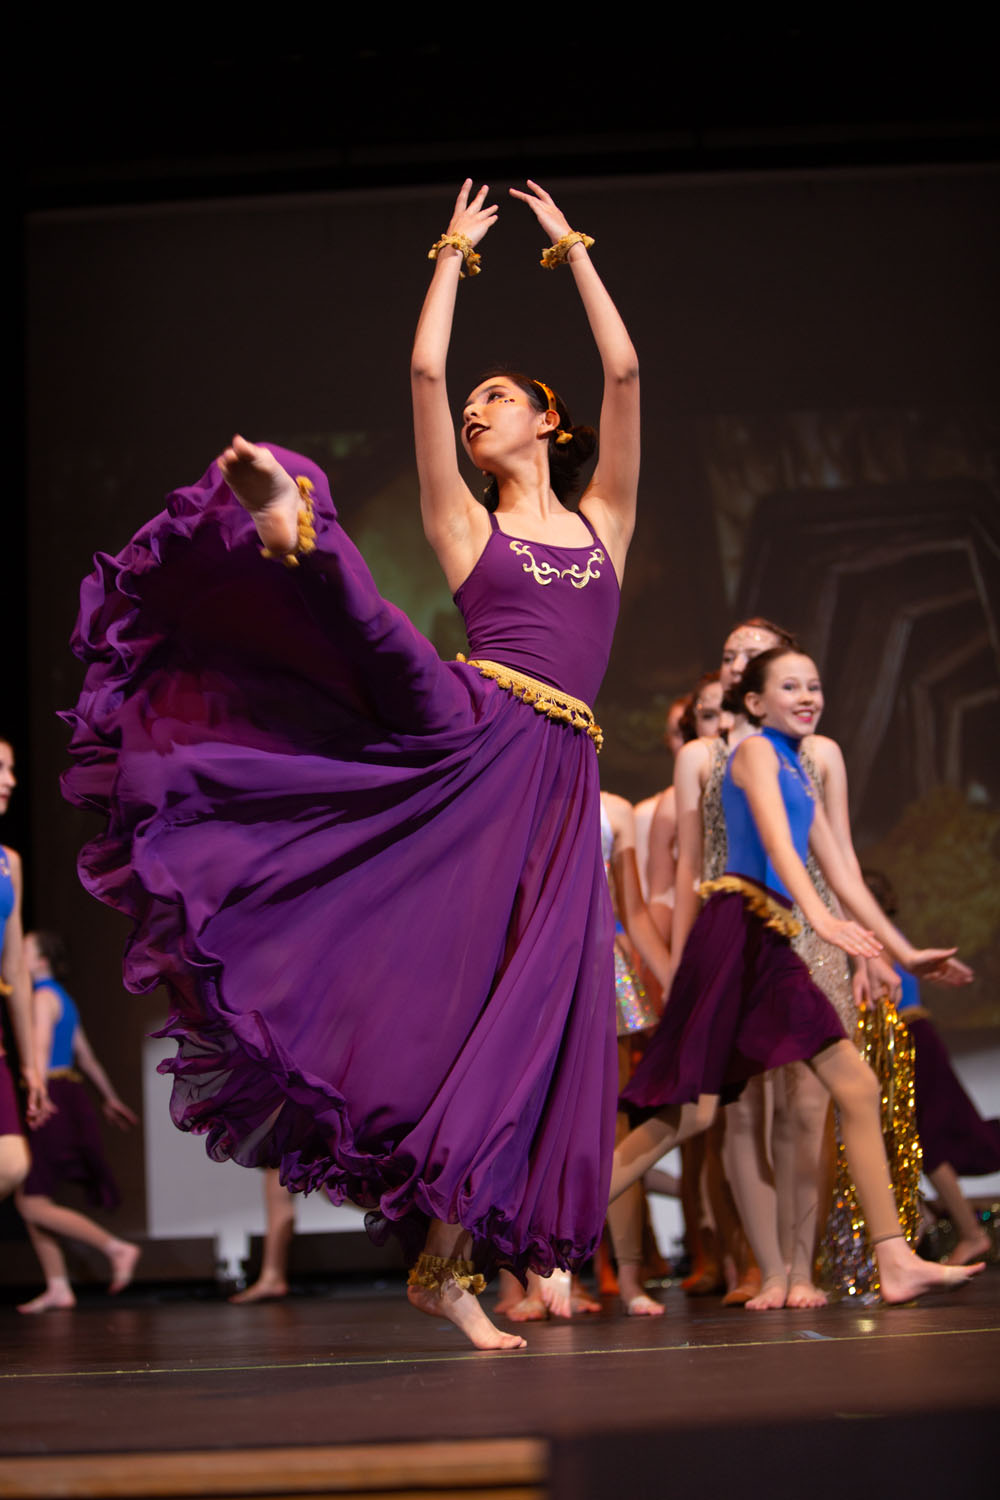 NPA Dance performed Aladdin on Saturday, Dec. 14, 2019 at Sinagua Middle School. Photo by Sean Openshaw / www.SeanOpenshaw.com